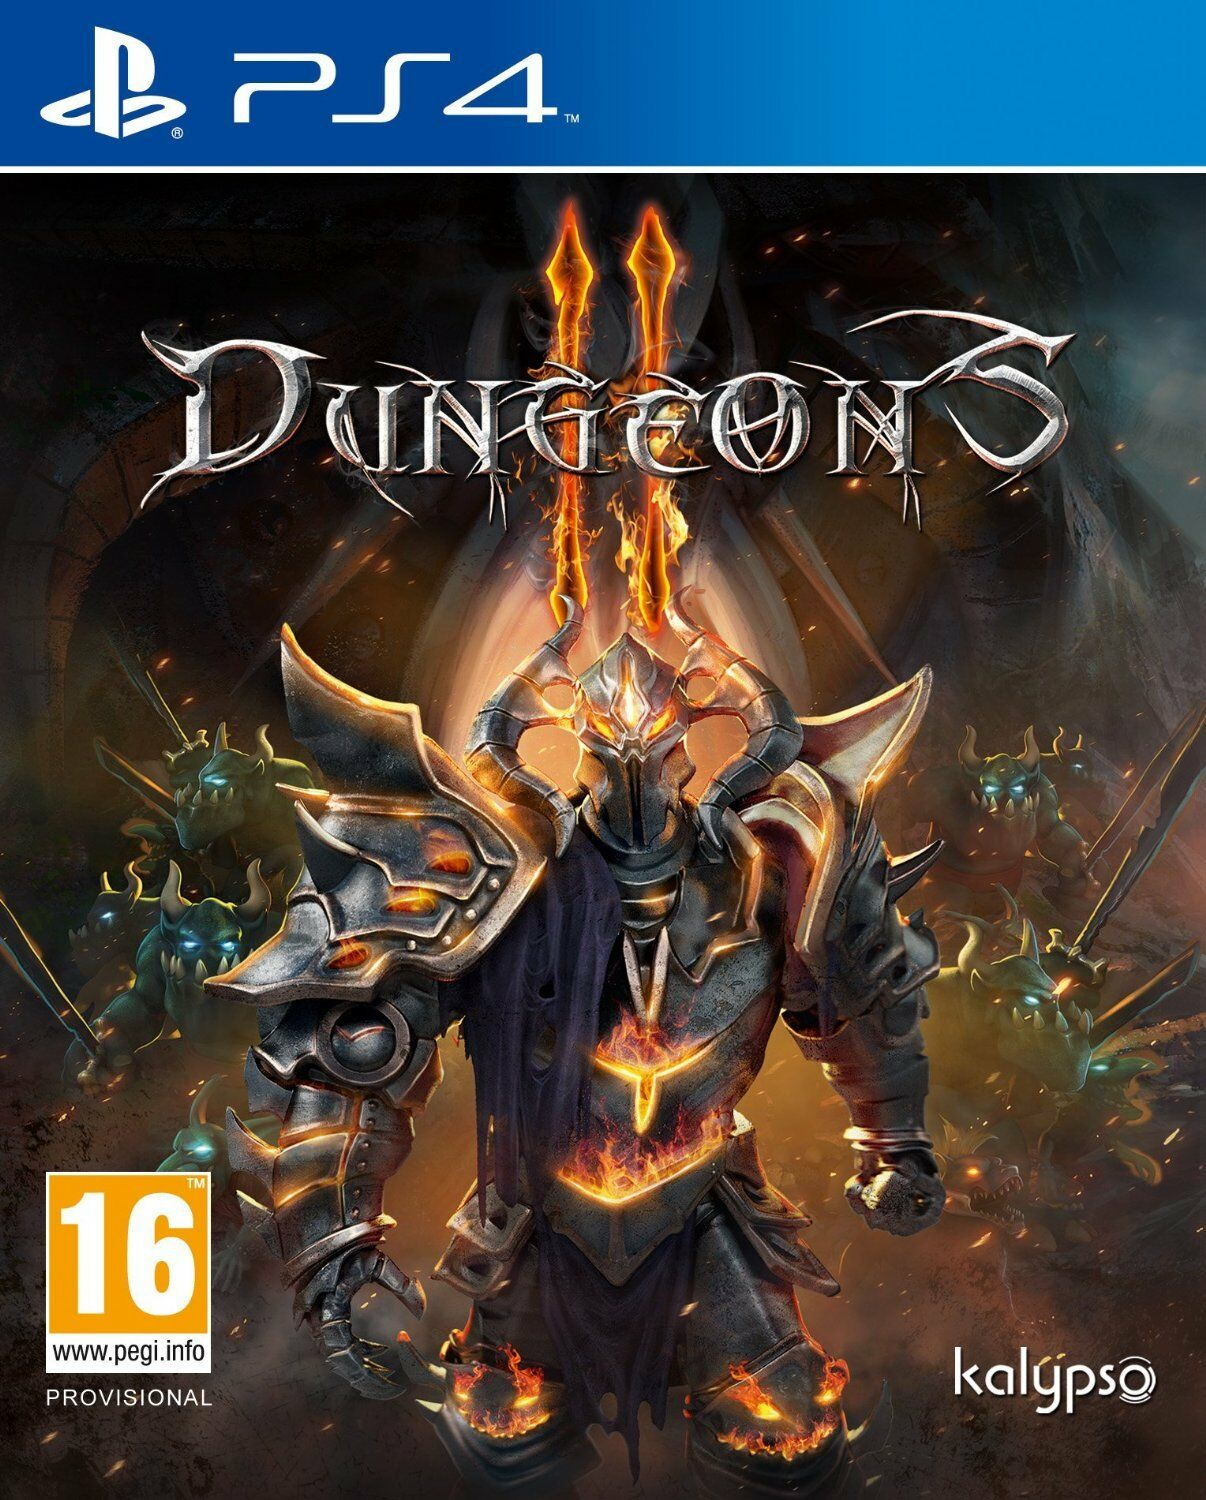 Dungeons 2 Ps4 Brand New Sealed Playstation 4 1695 Picclick Uk Sony Super Dungeon Bros 1 Of 1free Shipping